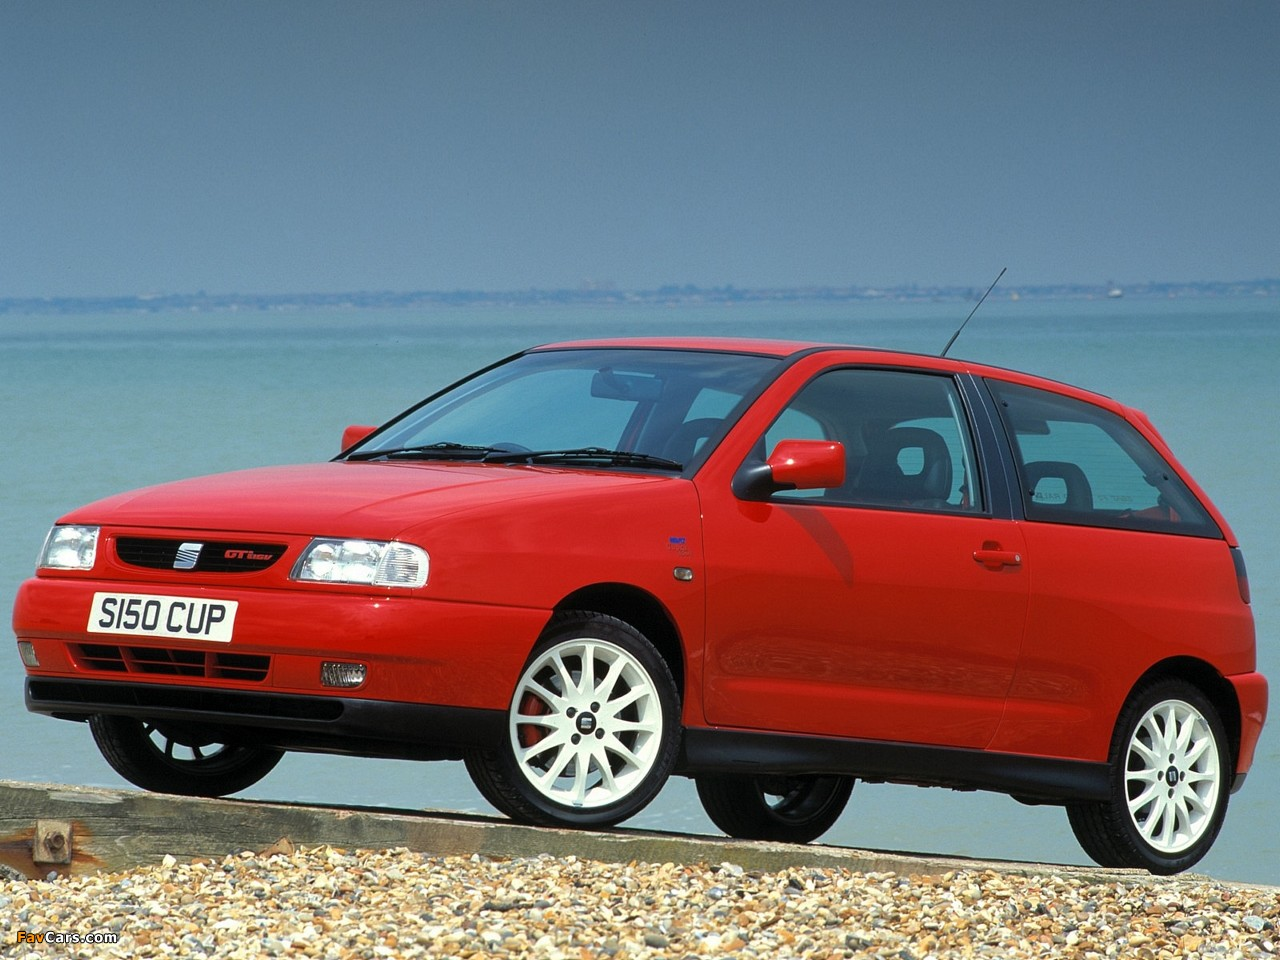 pictures of seat ibiza gti 16v cupra uk spec 1996 99 1280x960. Black Bedroom Furniture Sets. Home Design Ideas